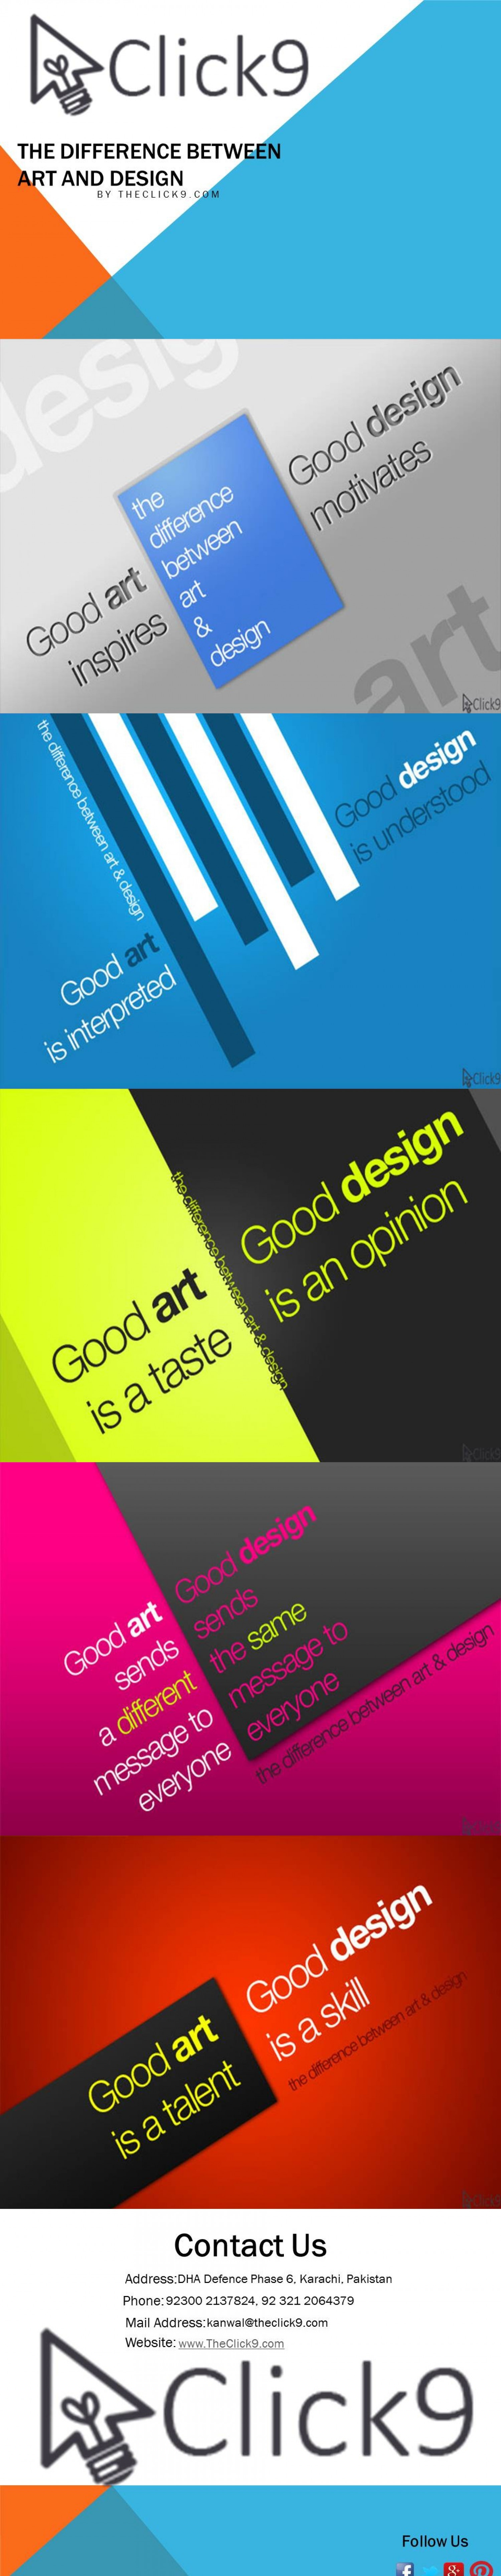 The Difference Between Art and Design. Infographic